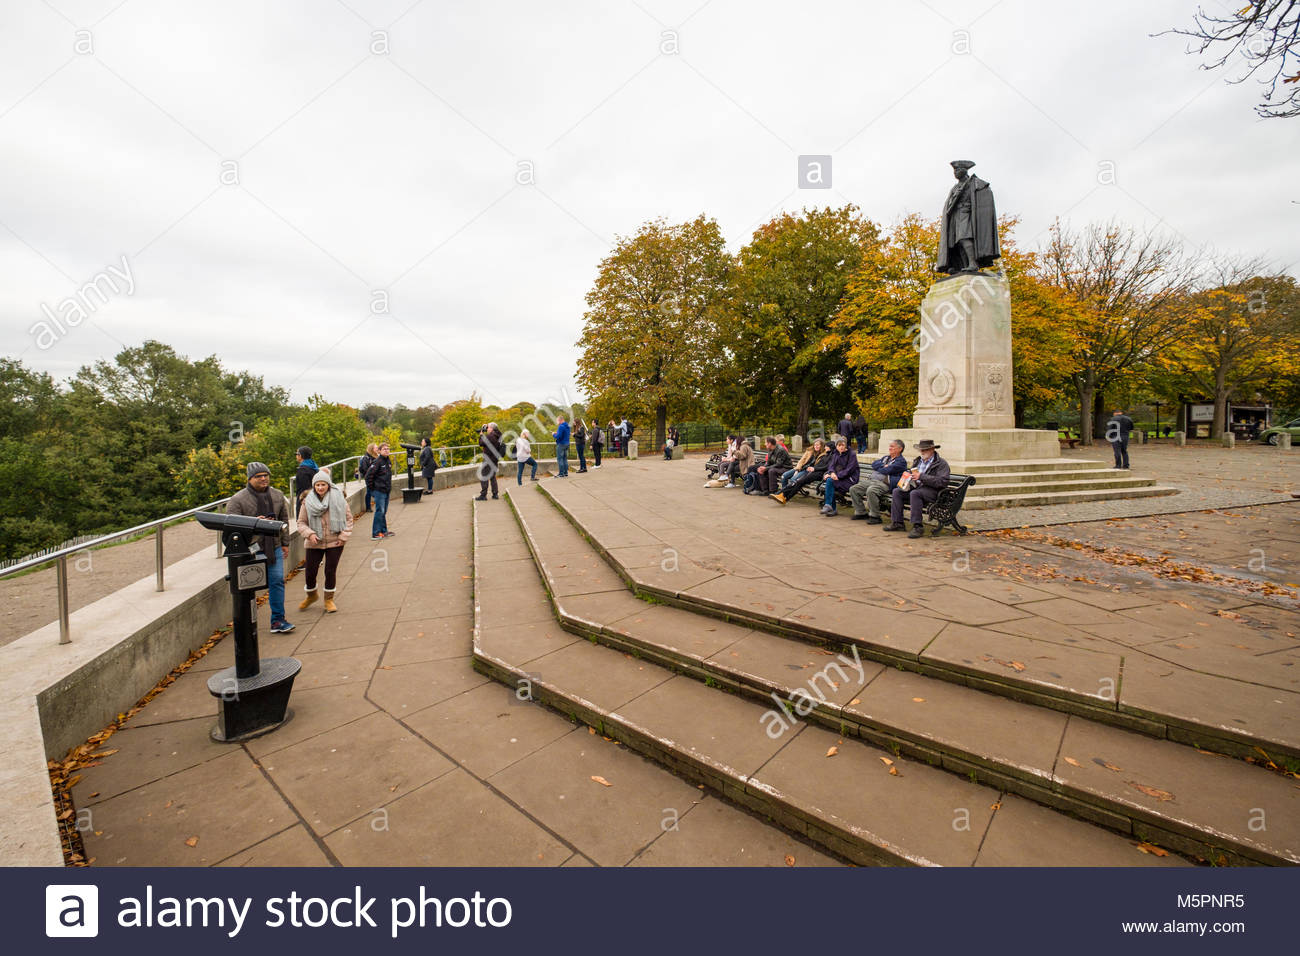 People sitting on benches below General James Wolfe Statue in Greenwich Park, Greenwich, London, England, United - Stock Image